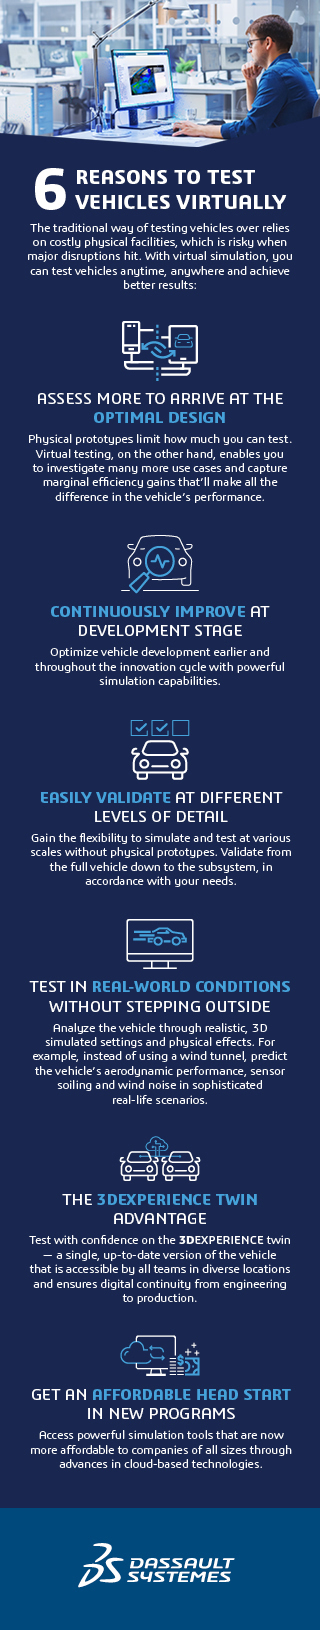 6 Ways to Test Vehicles Virtually Listicle > Mobile Image > Dassault Systèmes